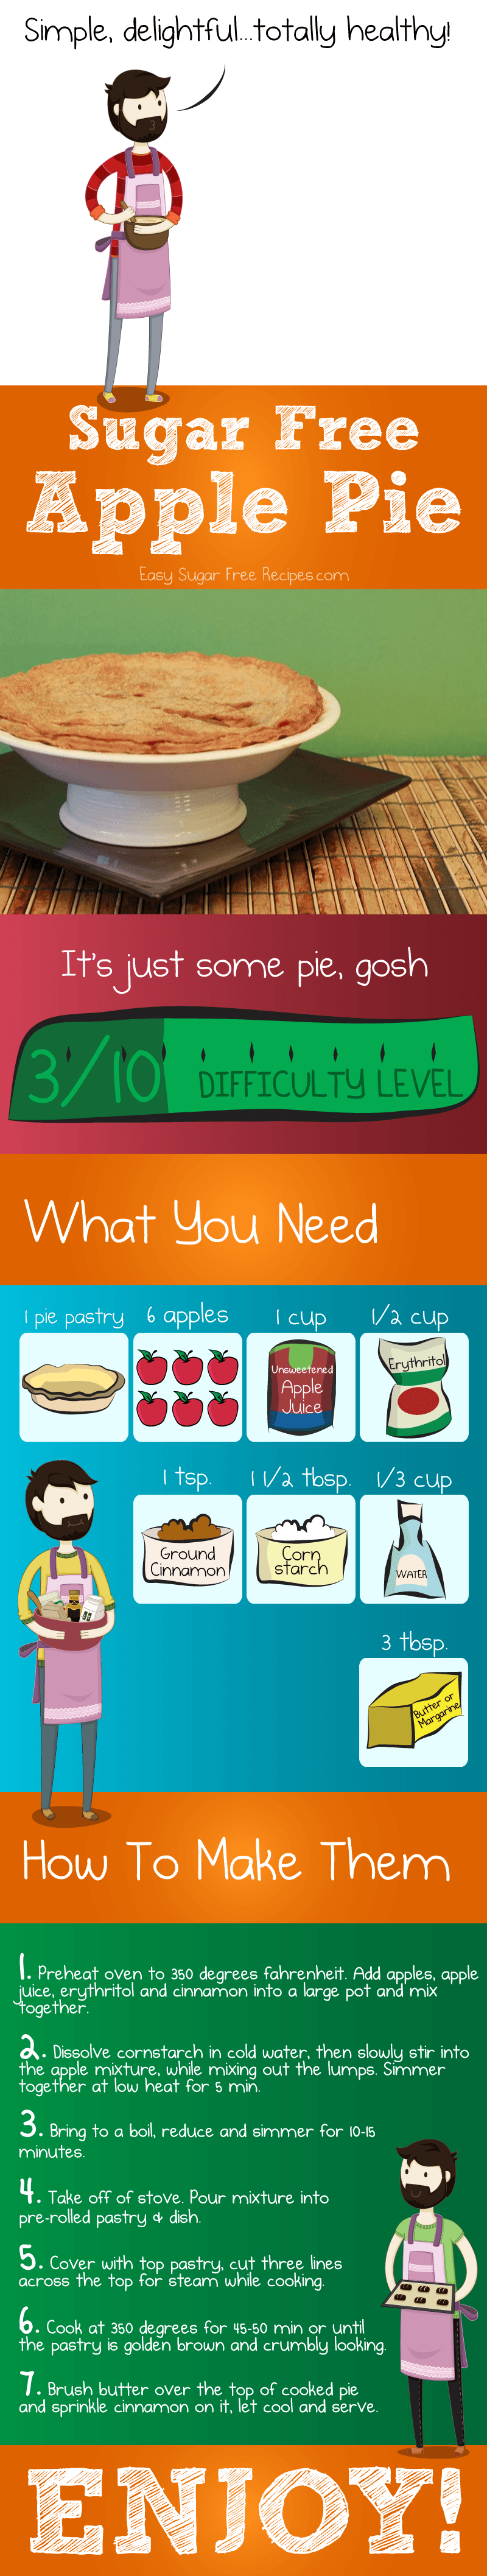 a comic cartoon for my sugar free apple pie with ingredients and directions